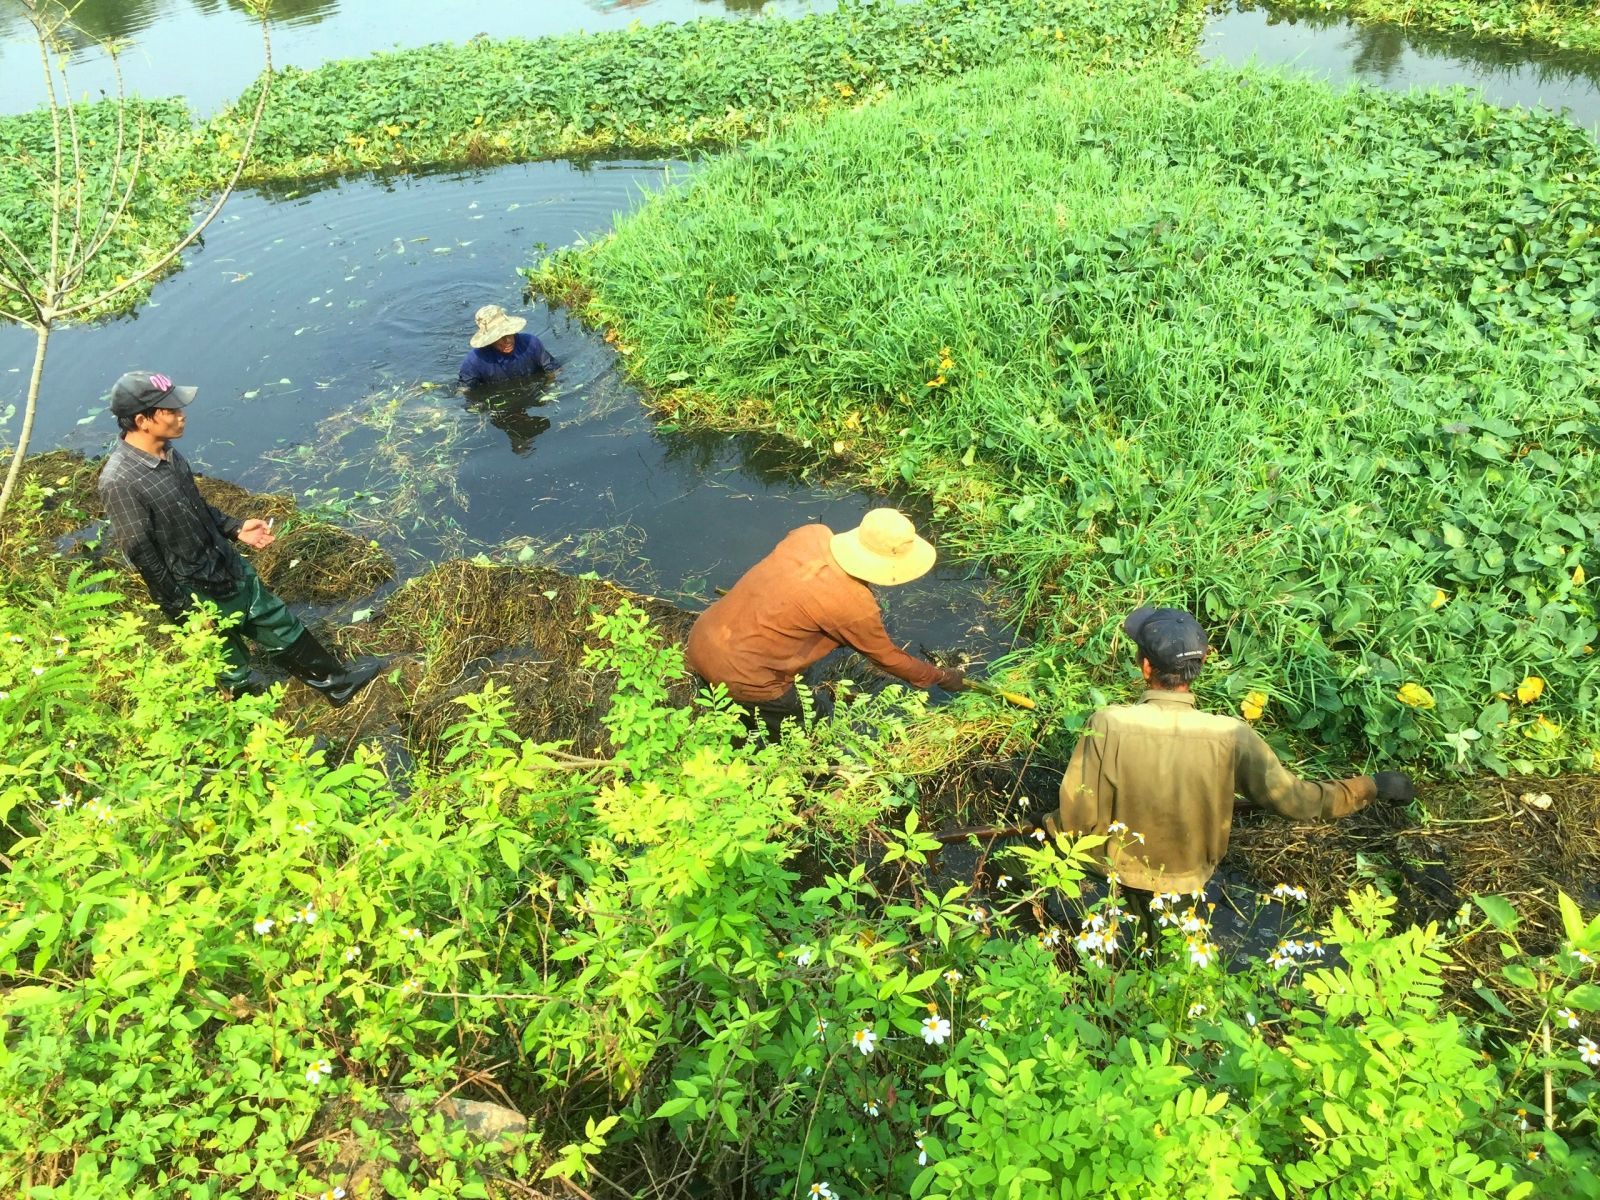 To plant lotus, project implementers have struggled to clean the water surface